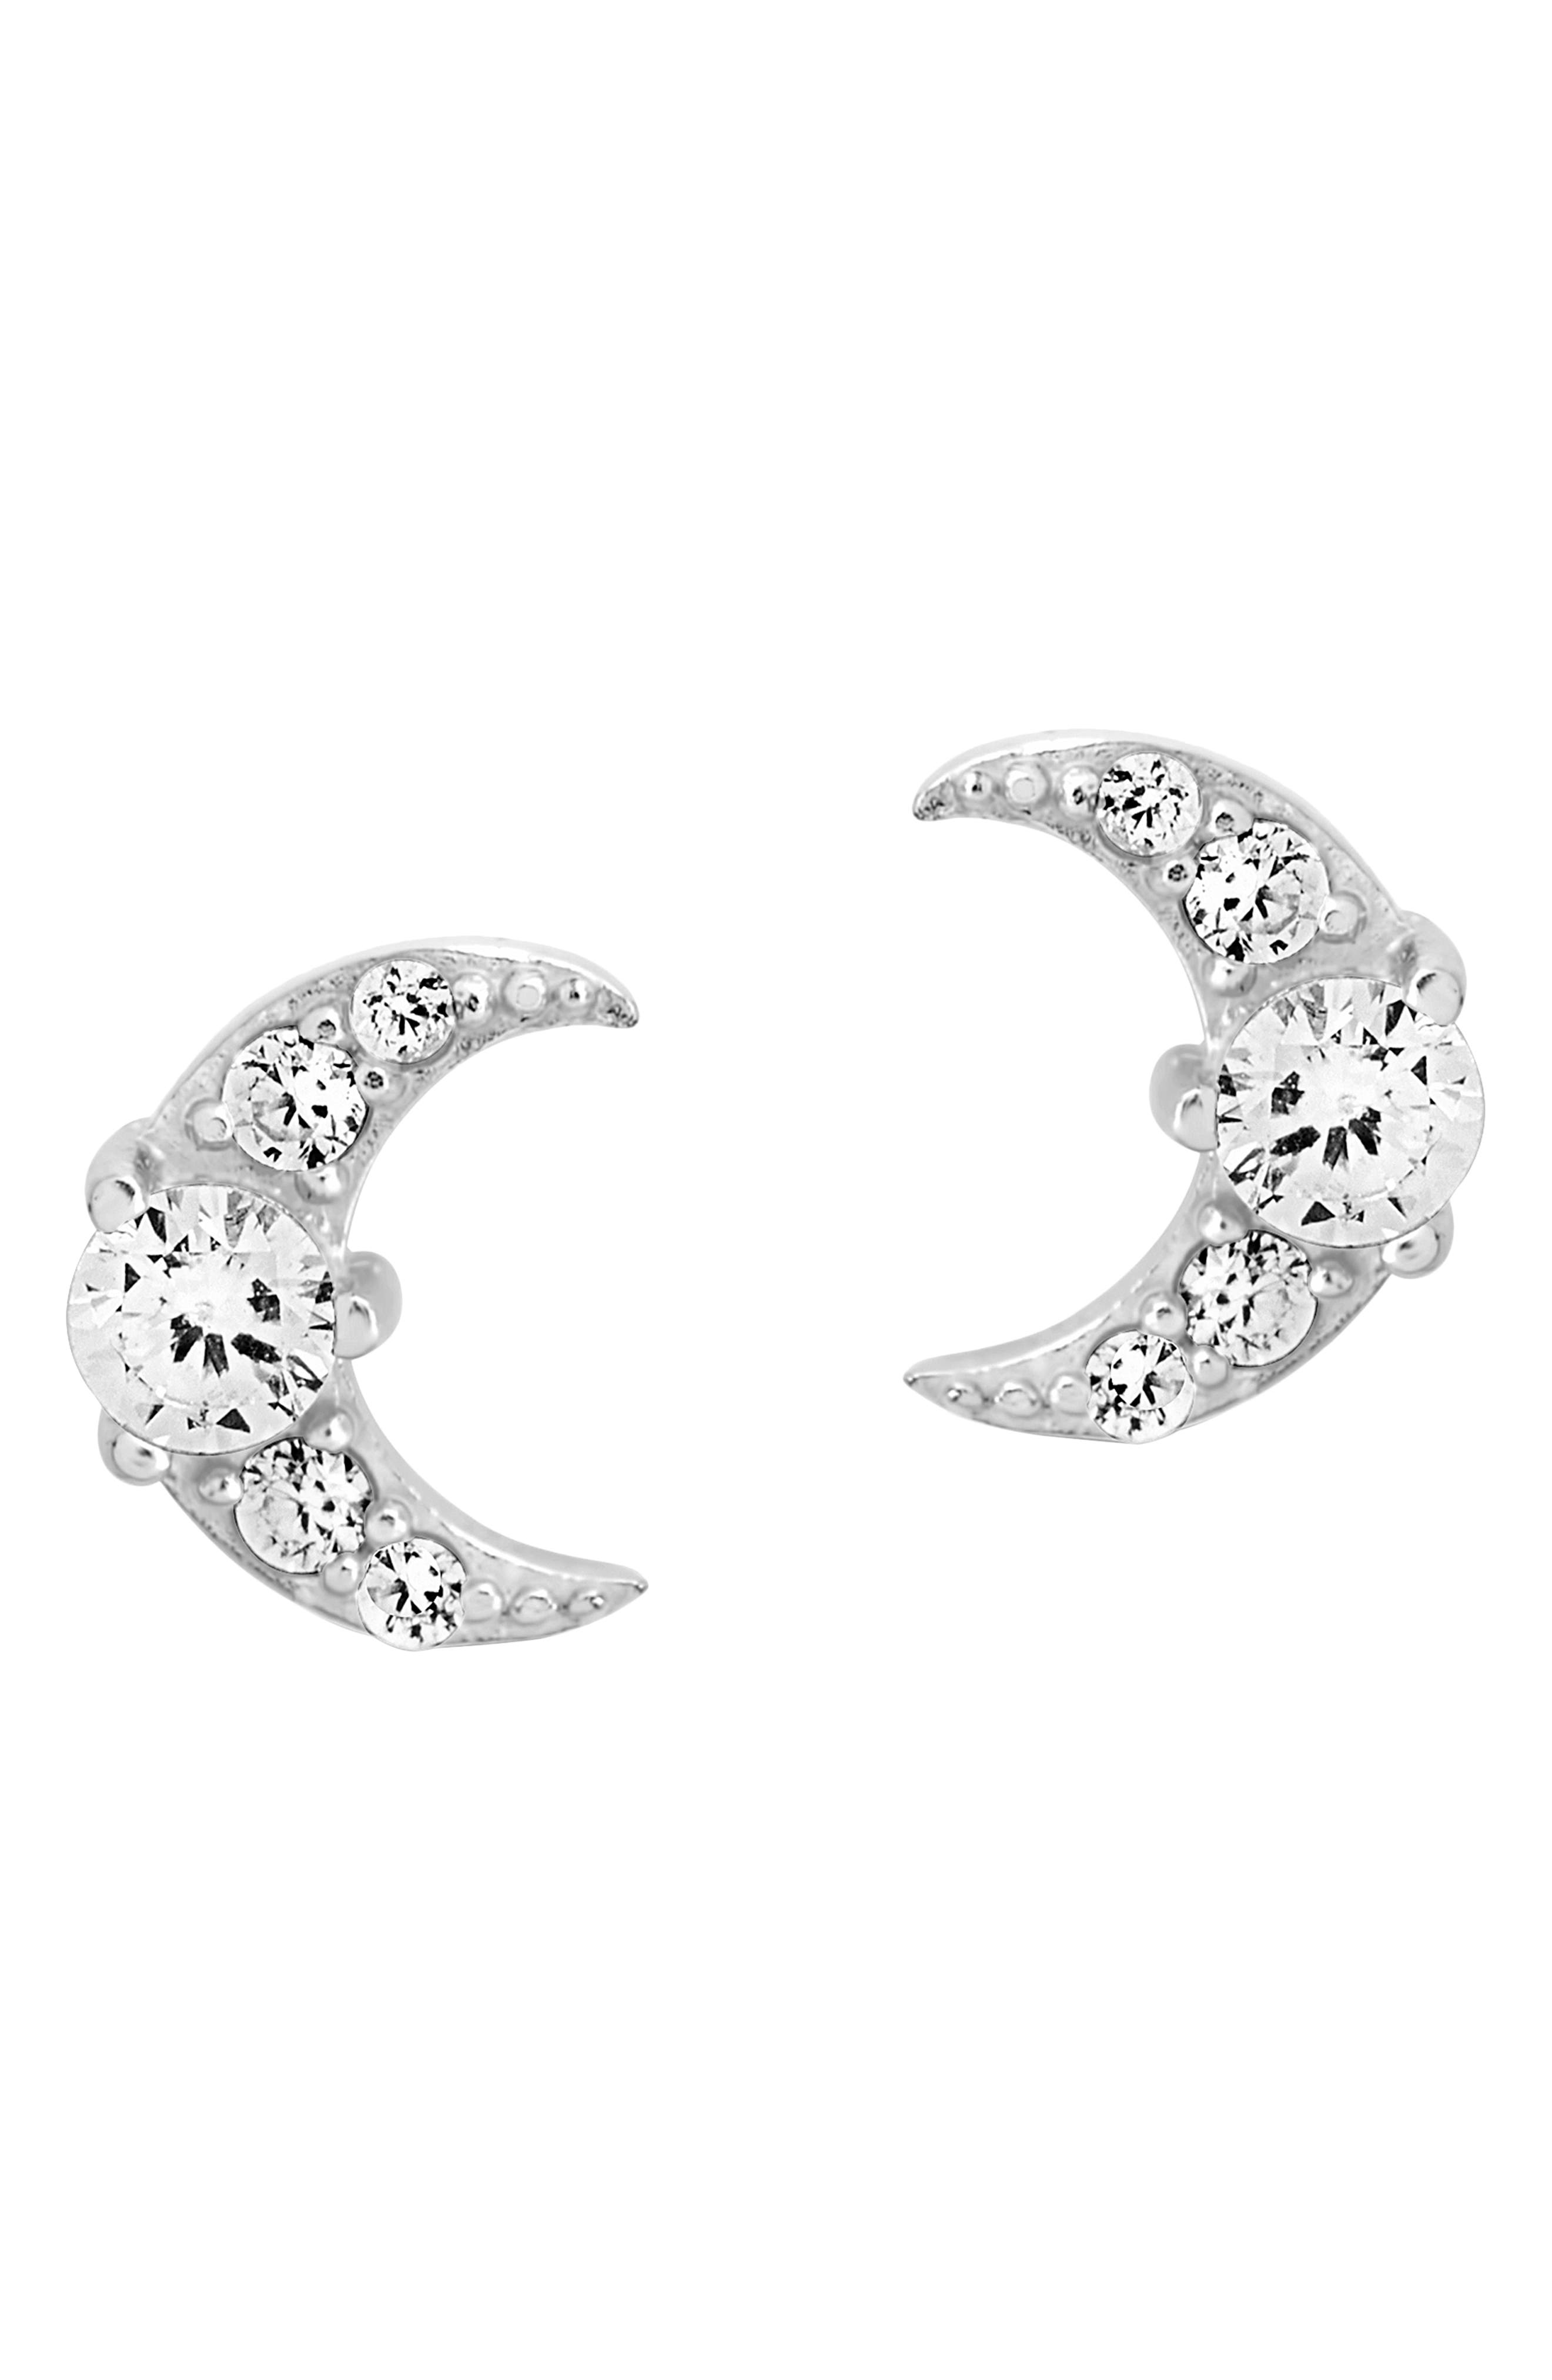 Gleaming crescent moons studded with sparkling cubic zirconia each form tiny but radiant stud earrings that bring a touch of celestial glamour to your lobes. Style Name: Sterling Forever Crescent Moon Stud Earrings. Style Number: 6114366. Available in stores.